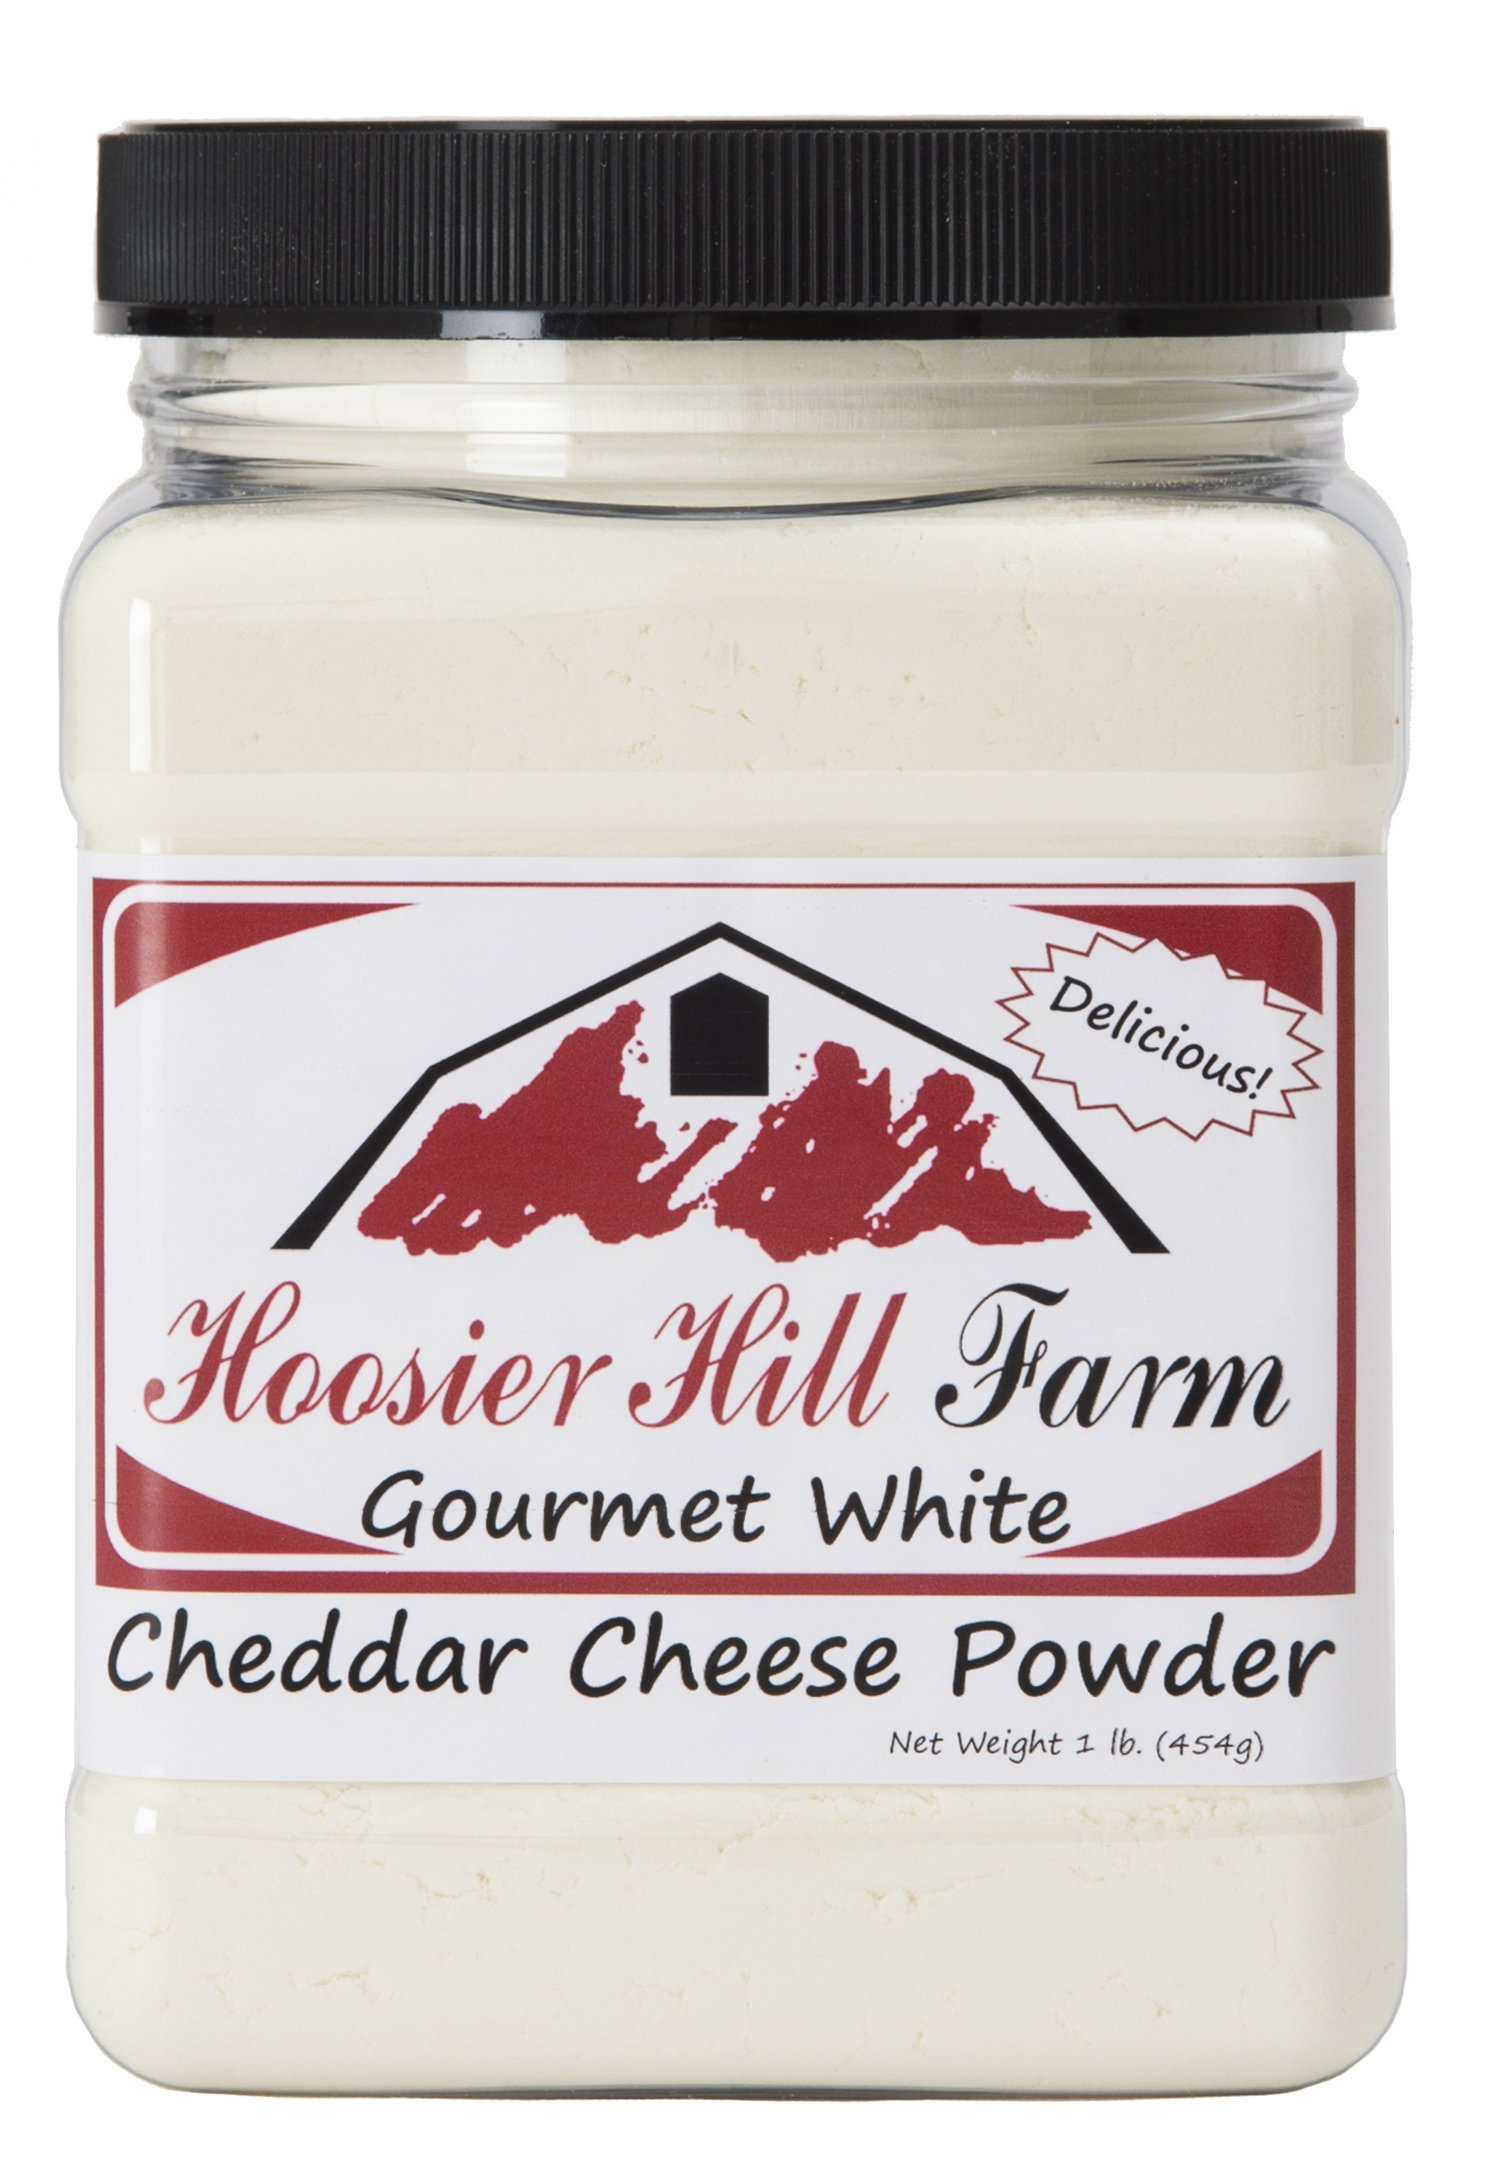 Hoosier Hill Farm White Cheddar Cheese Powder, 1 Pound by Hoosier Hill Farm (Image #1)